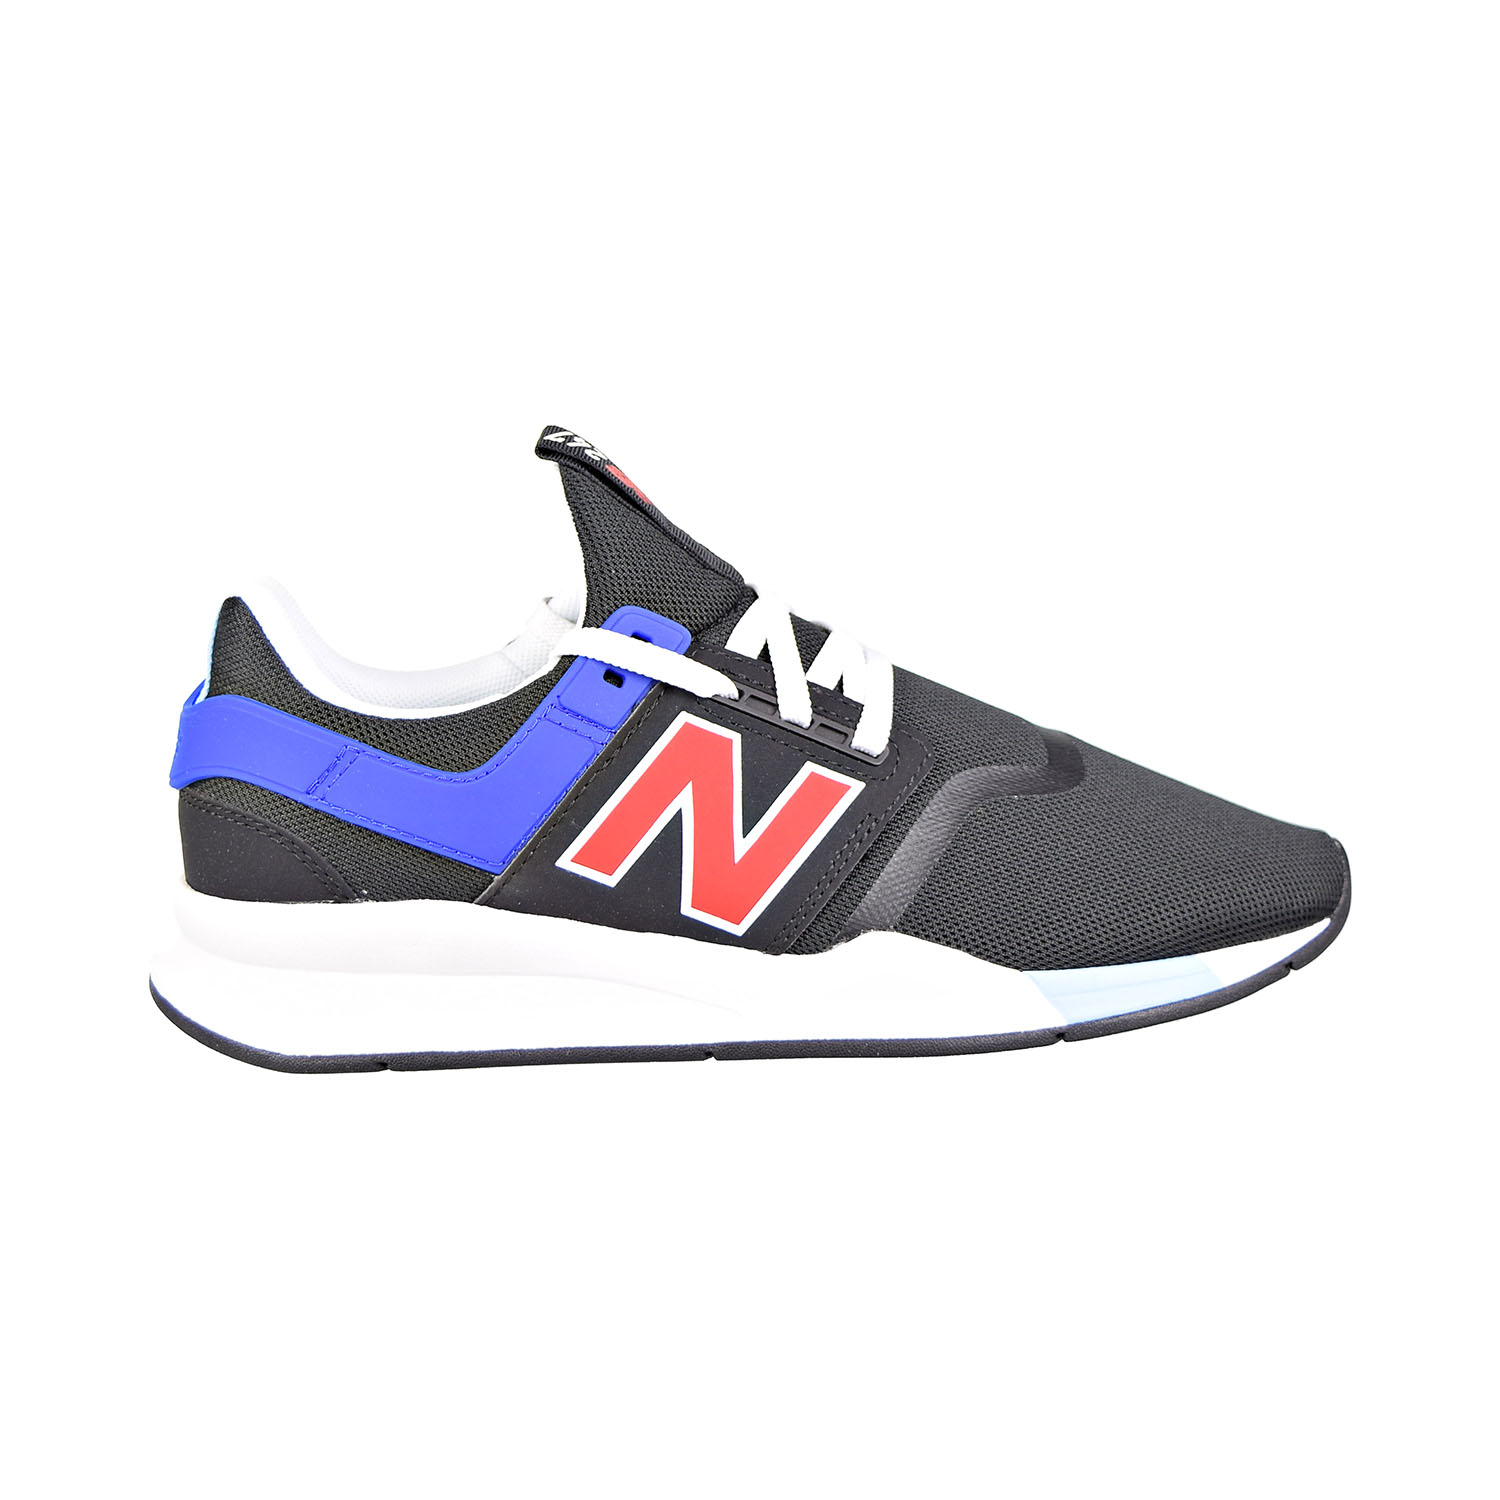 Details about New Balance 247v2 Men's Shoes Black Blue White MS247 FQ